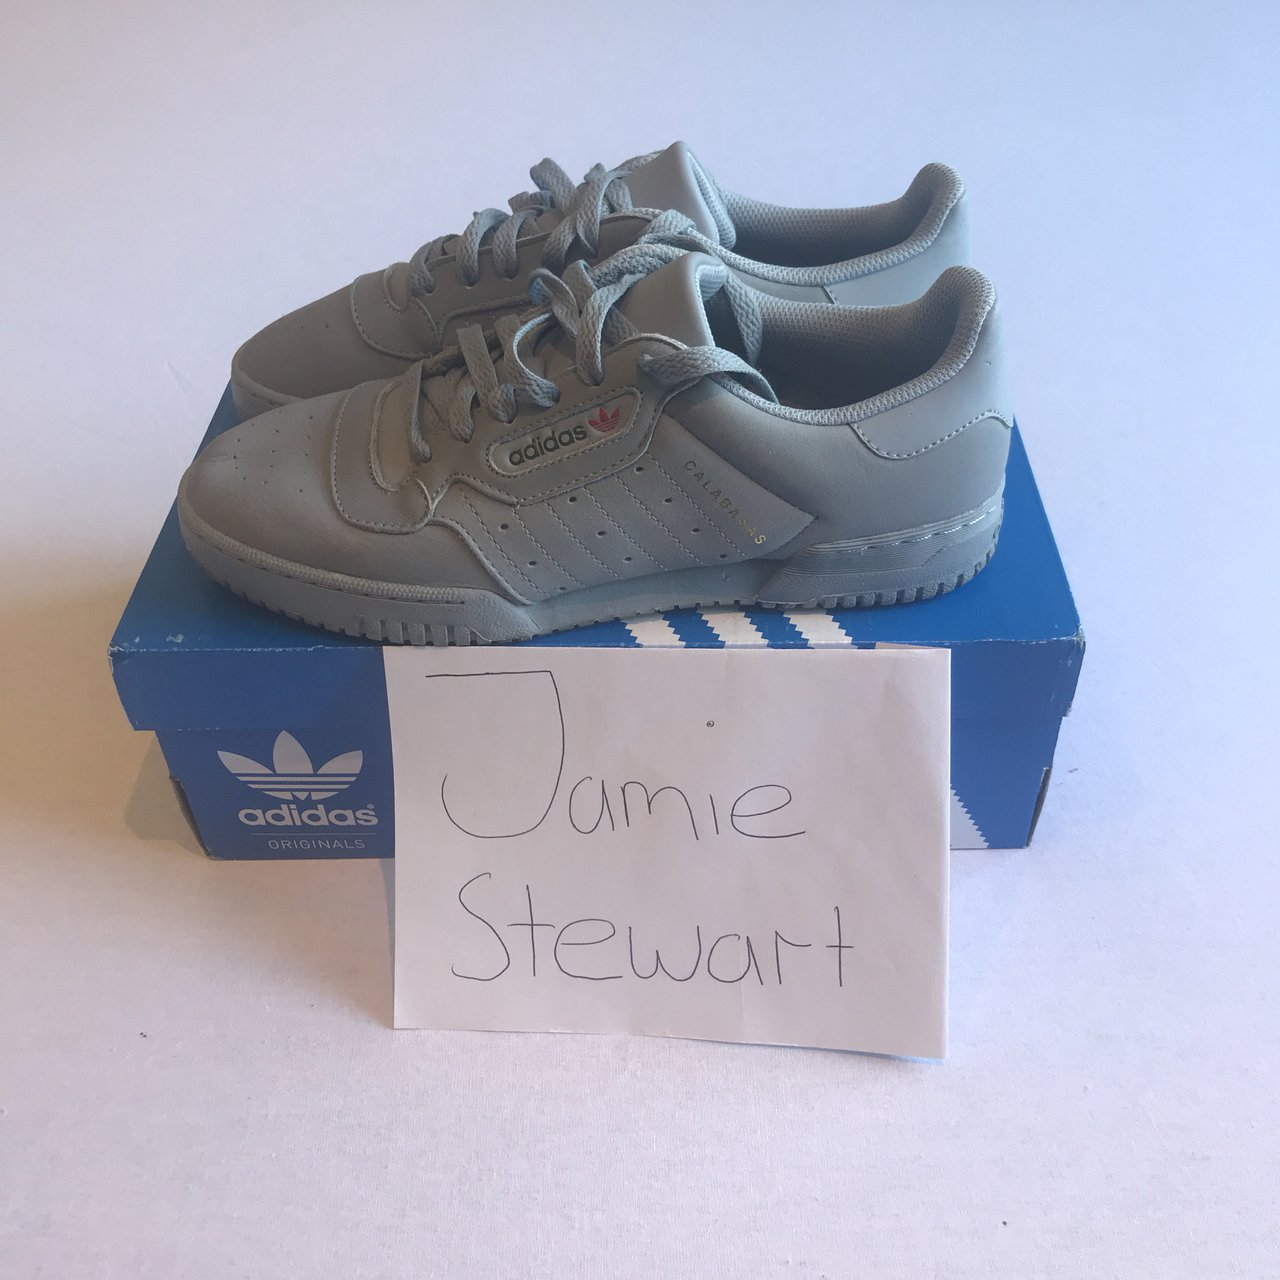 a1f1ed755d0 Adidas Yeezy Powerphase Grey Price  £65 + fees and 9 10 UK - Depop